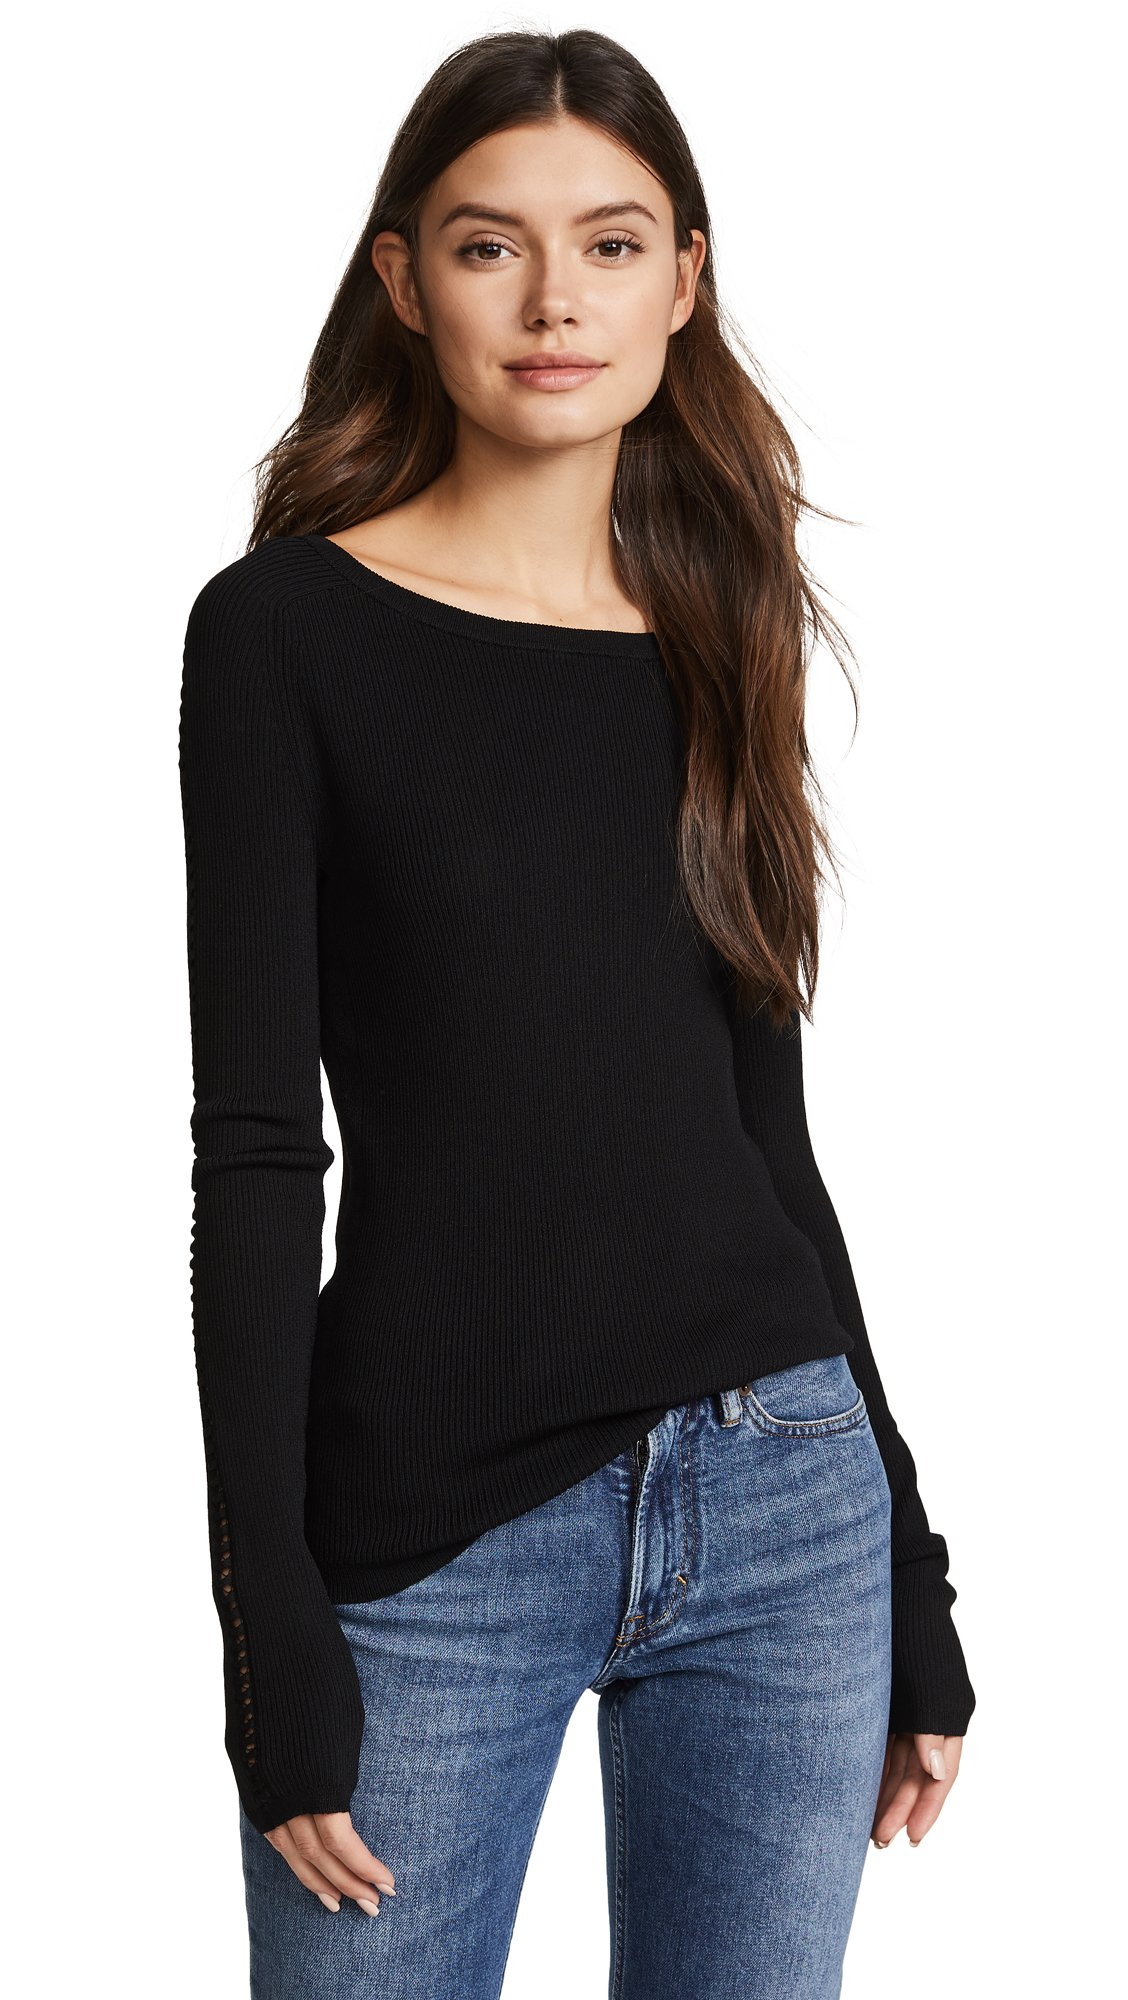 360 SWEATER Women's Eve Sweater, Black, Small